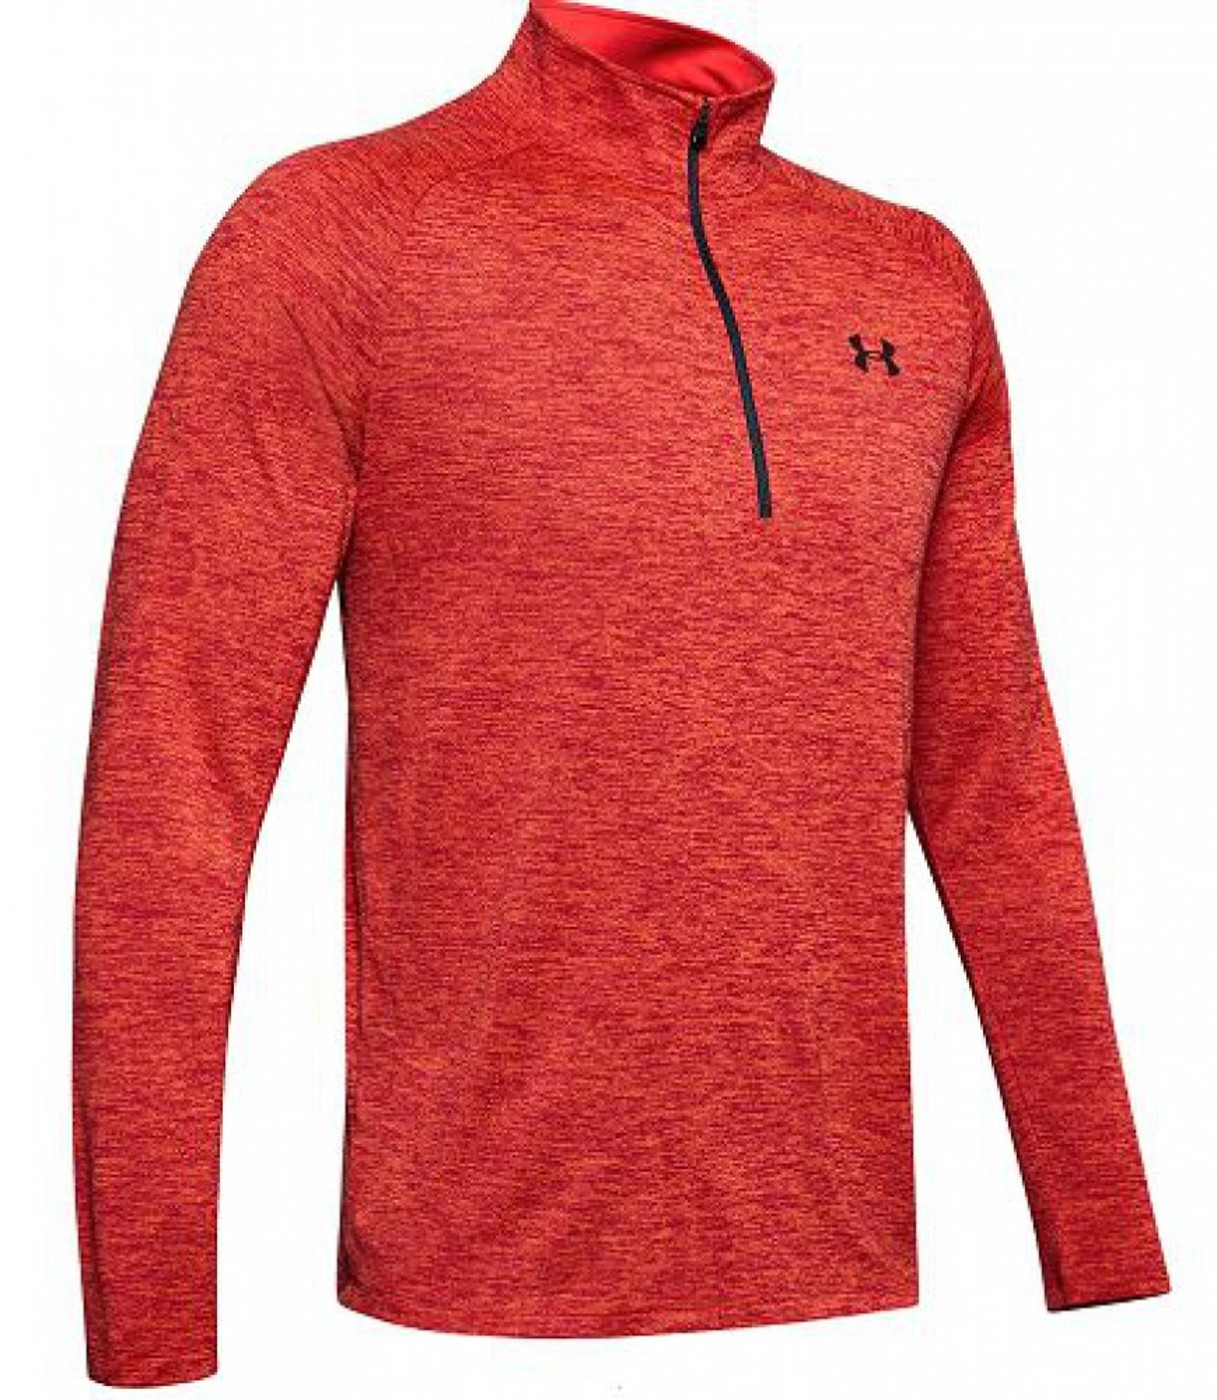 UNDER ARMOUR UA Tech 2.0 1/2 Zip - Herren